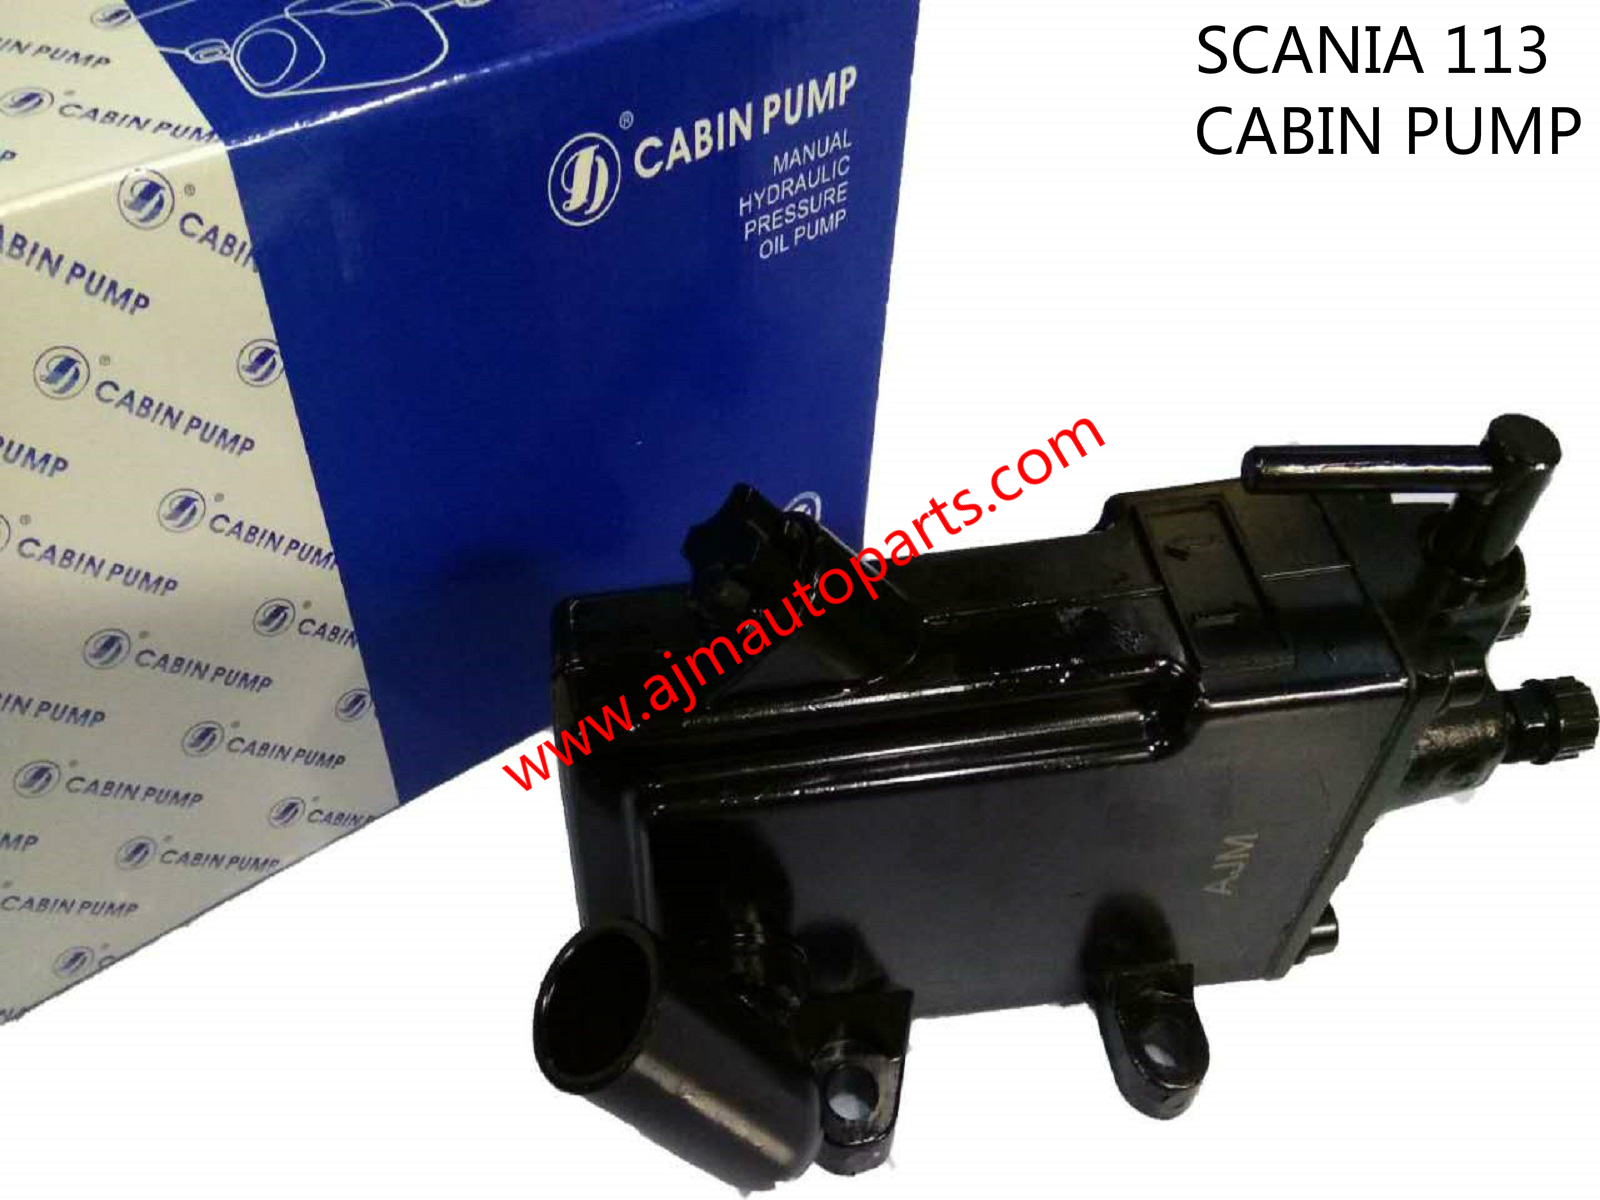 MB 1625 SCANIA 113 CABIN PUMP